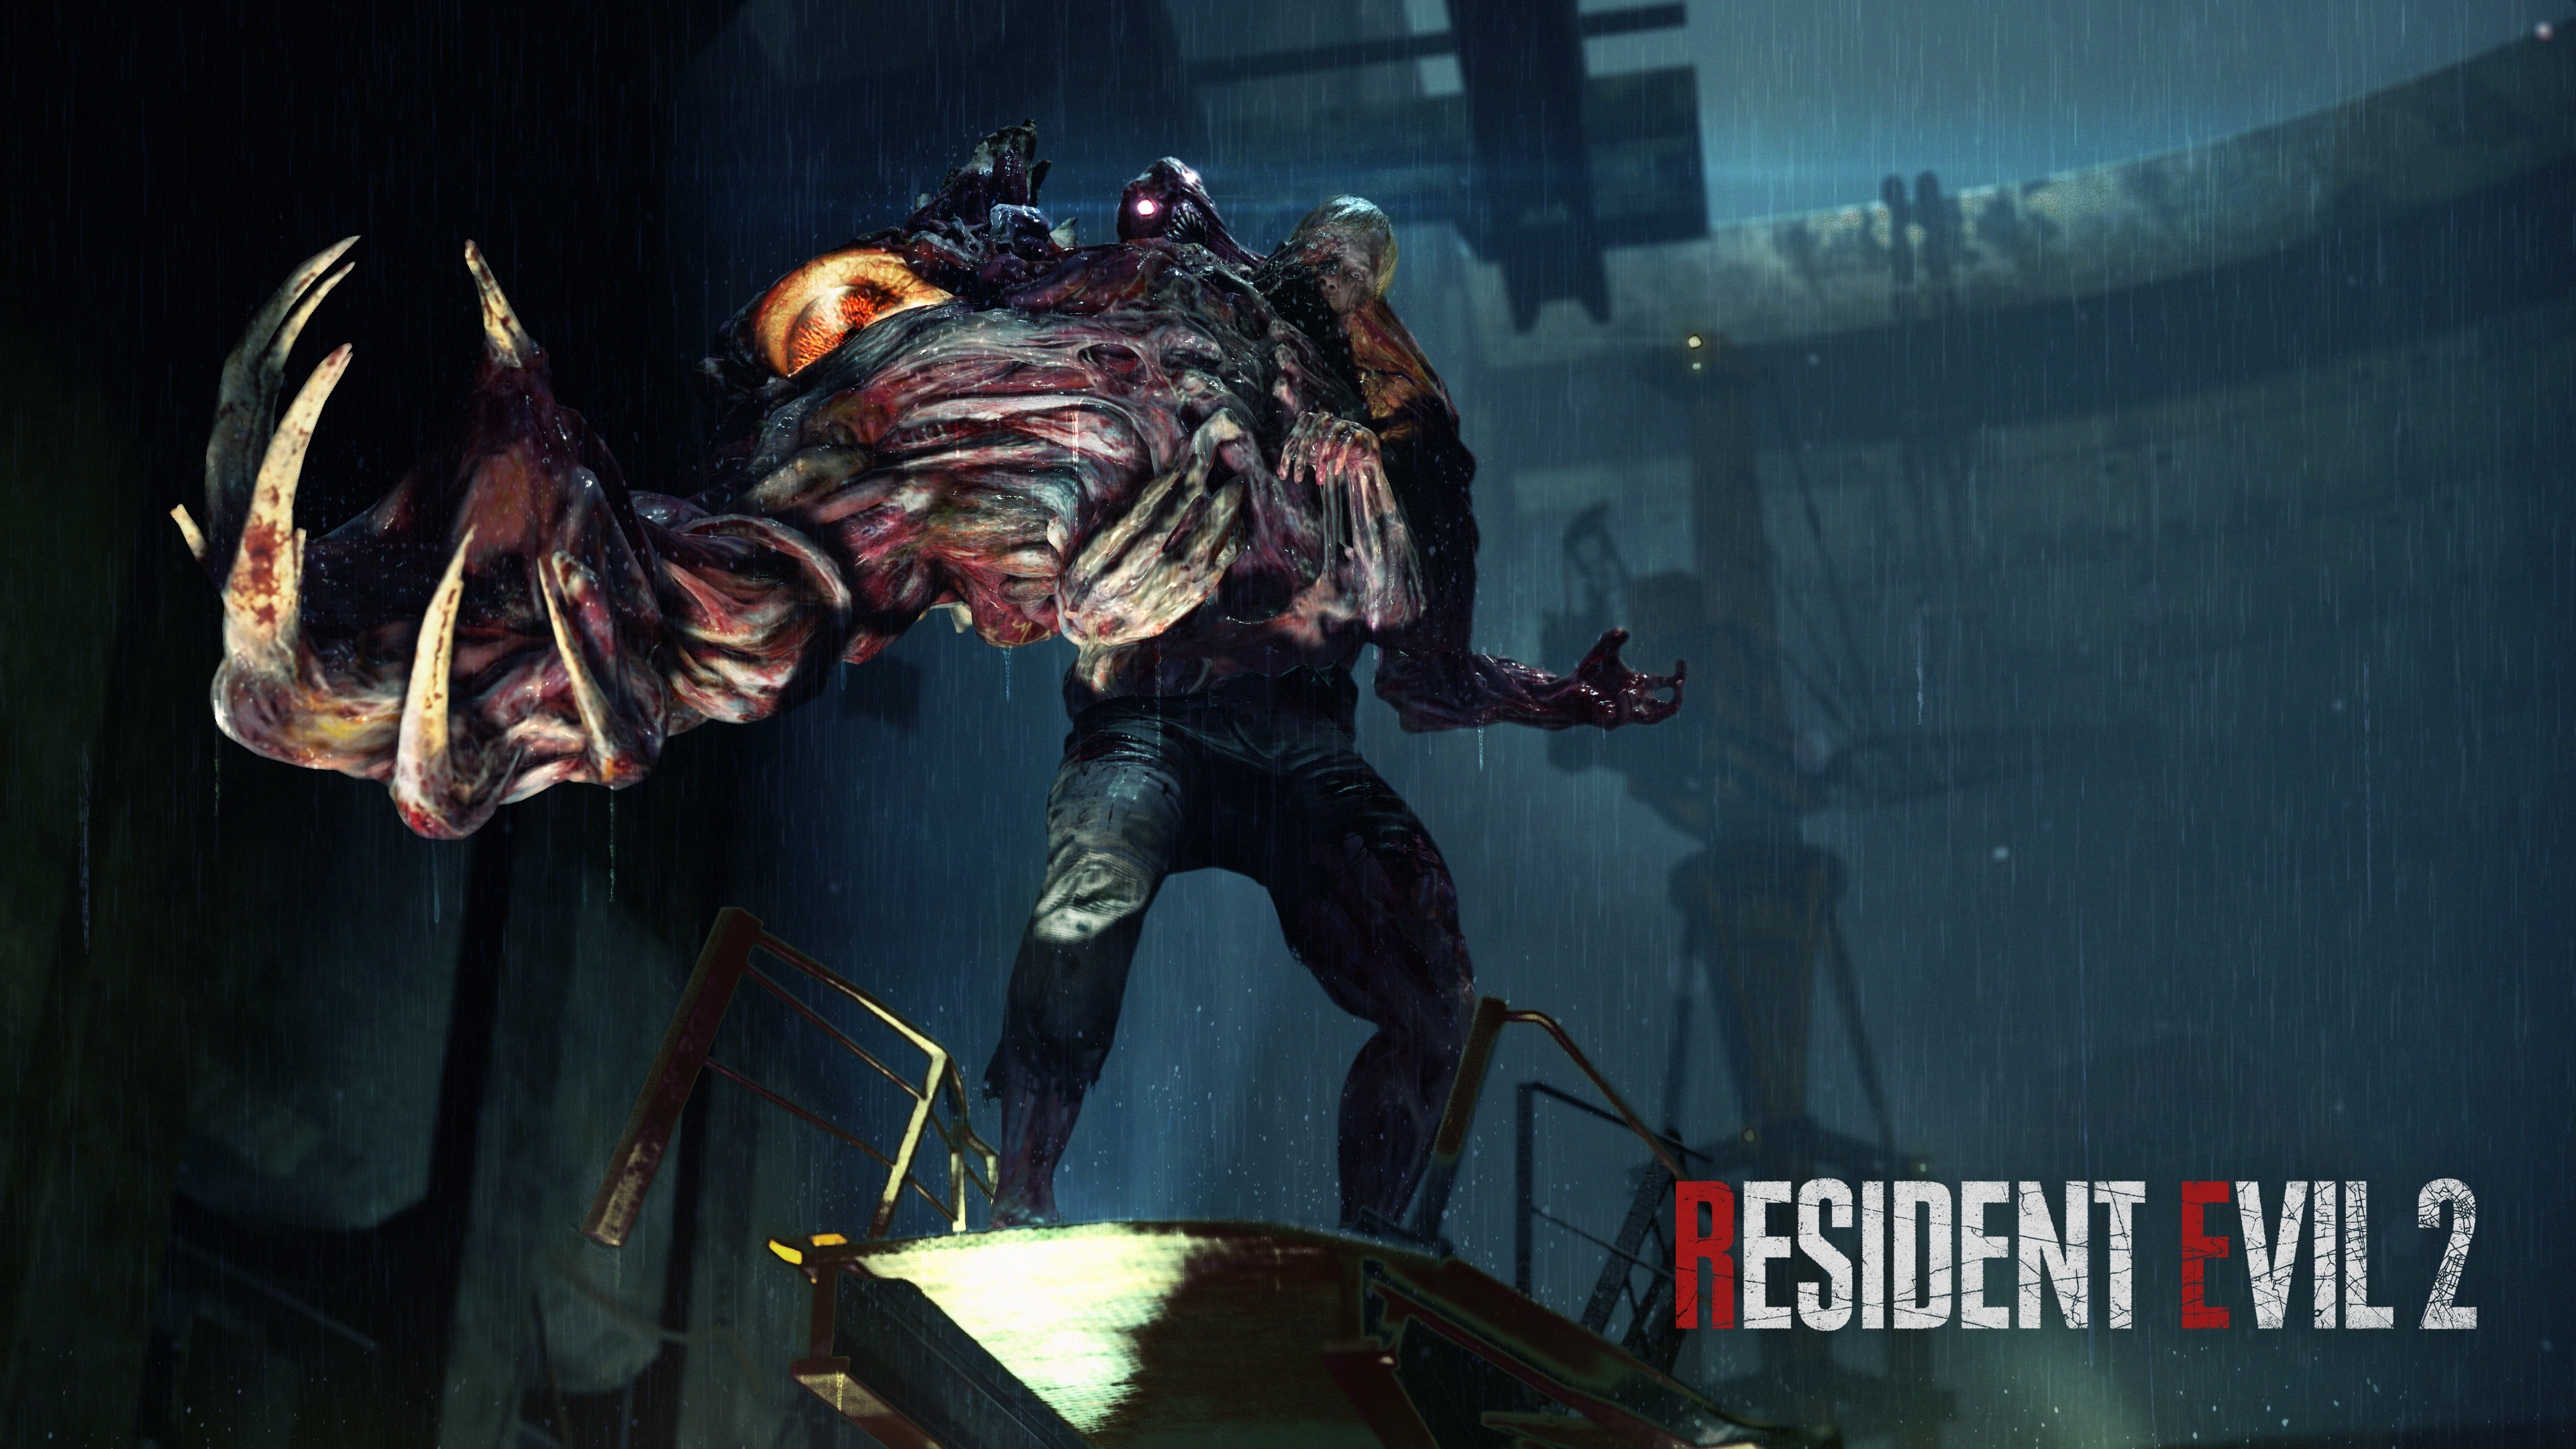 Resident Evil 2 Hd Wallpaper Posted By Zoey Johnson